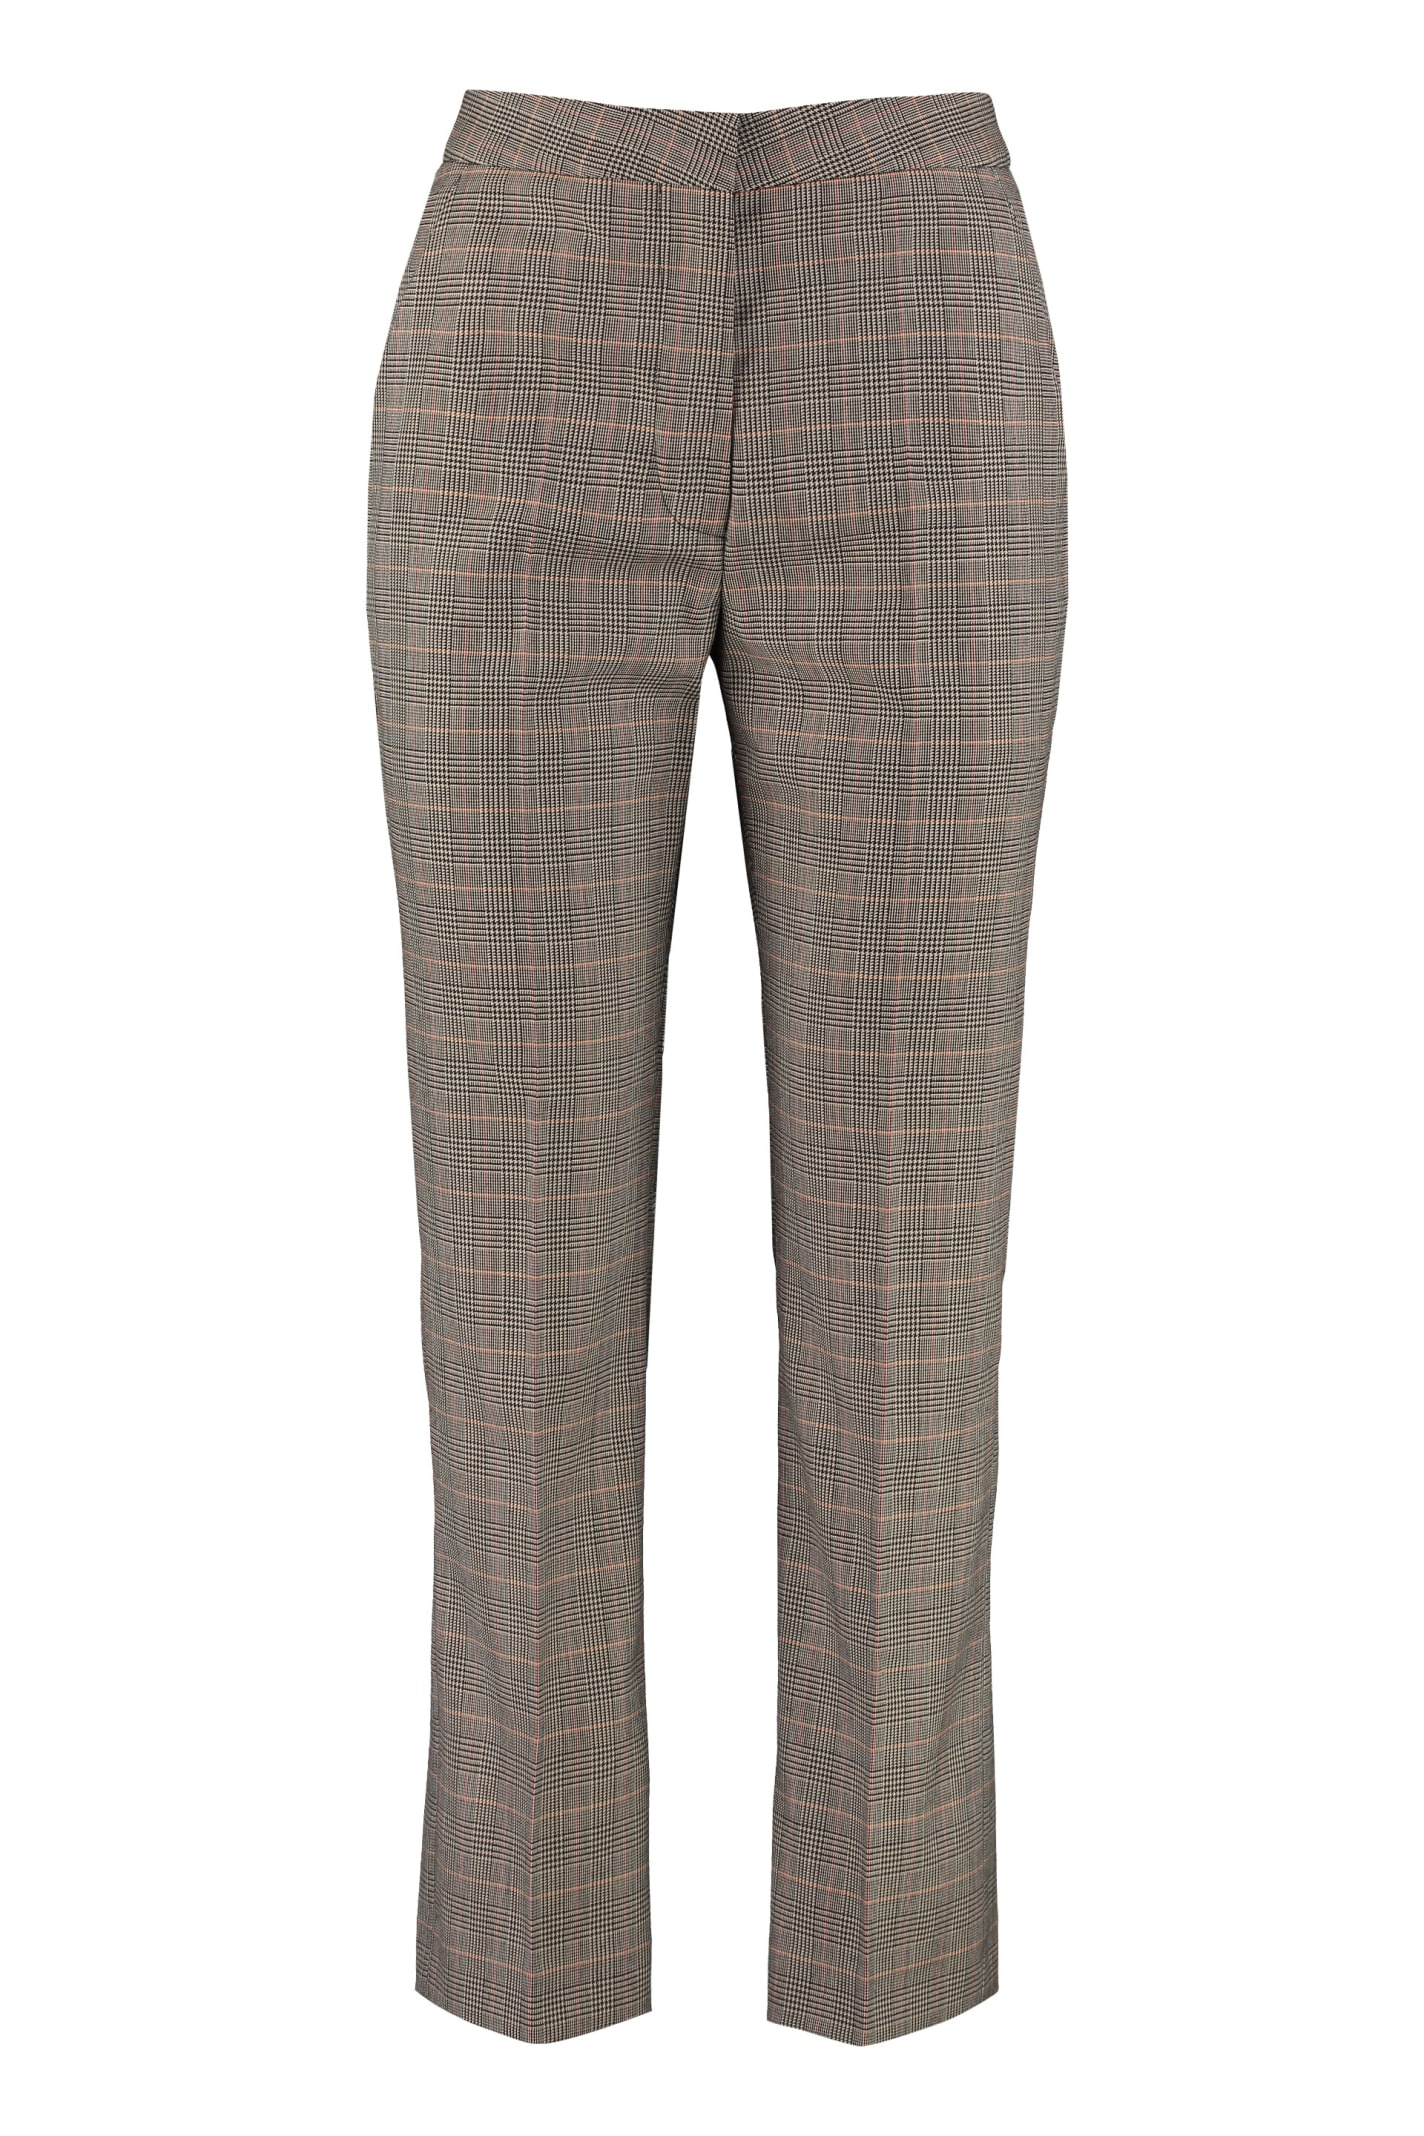 Stella McCartney Carlie Prince Of Wales Check Wool Trousers